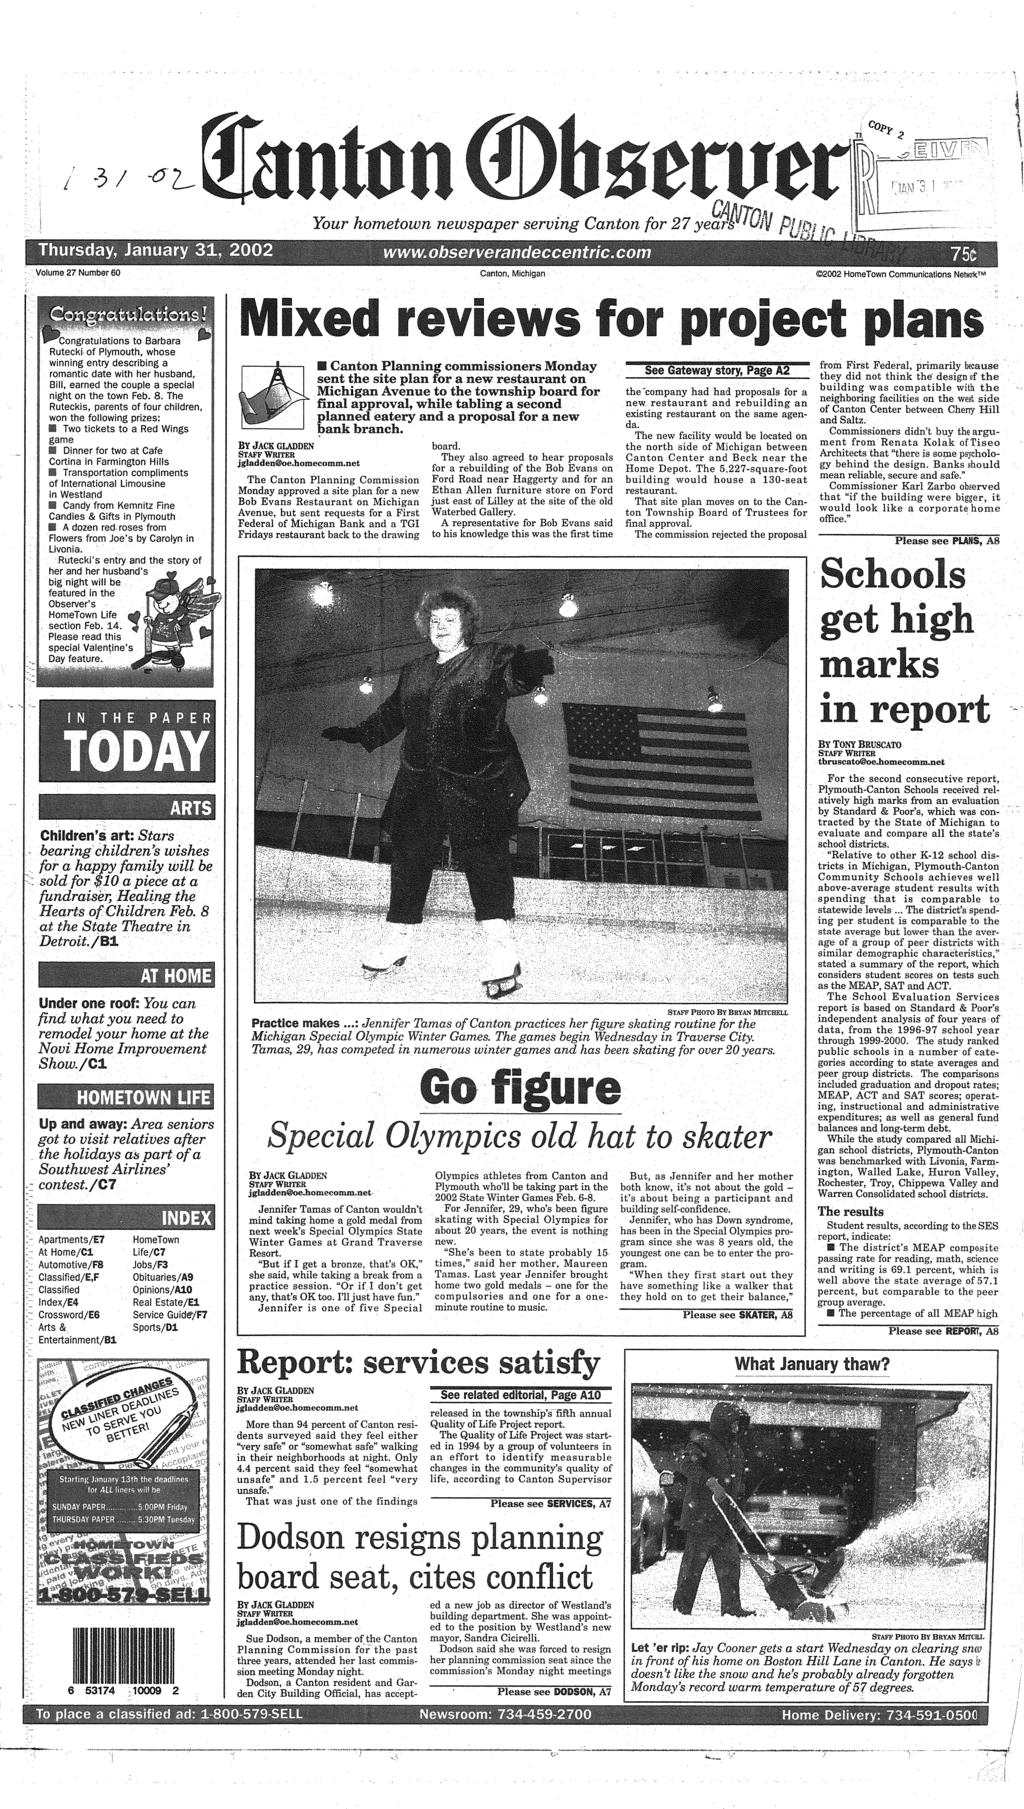 3/ ^ Thursday, January 31. 2002 Your hometown newspaper serving Canton for